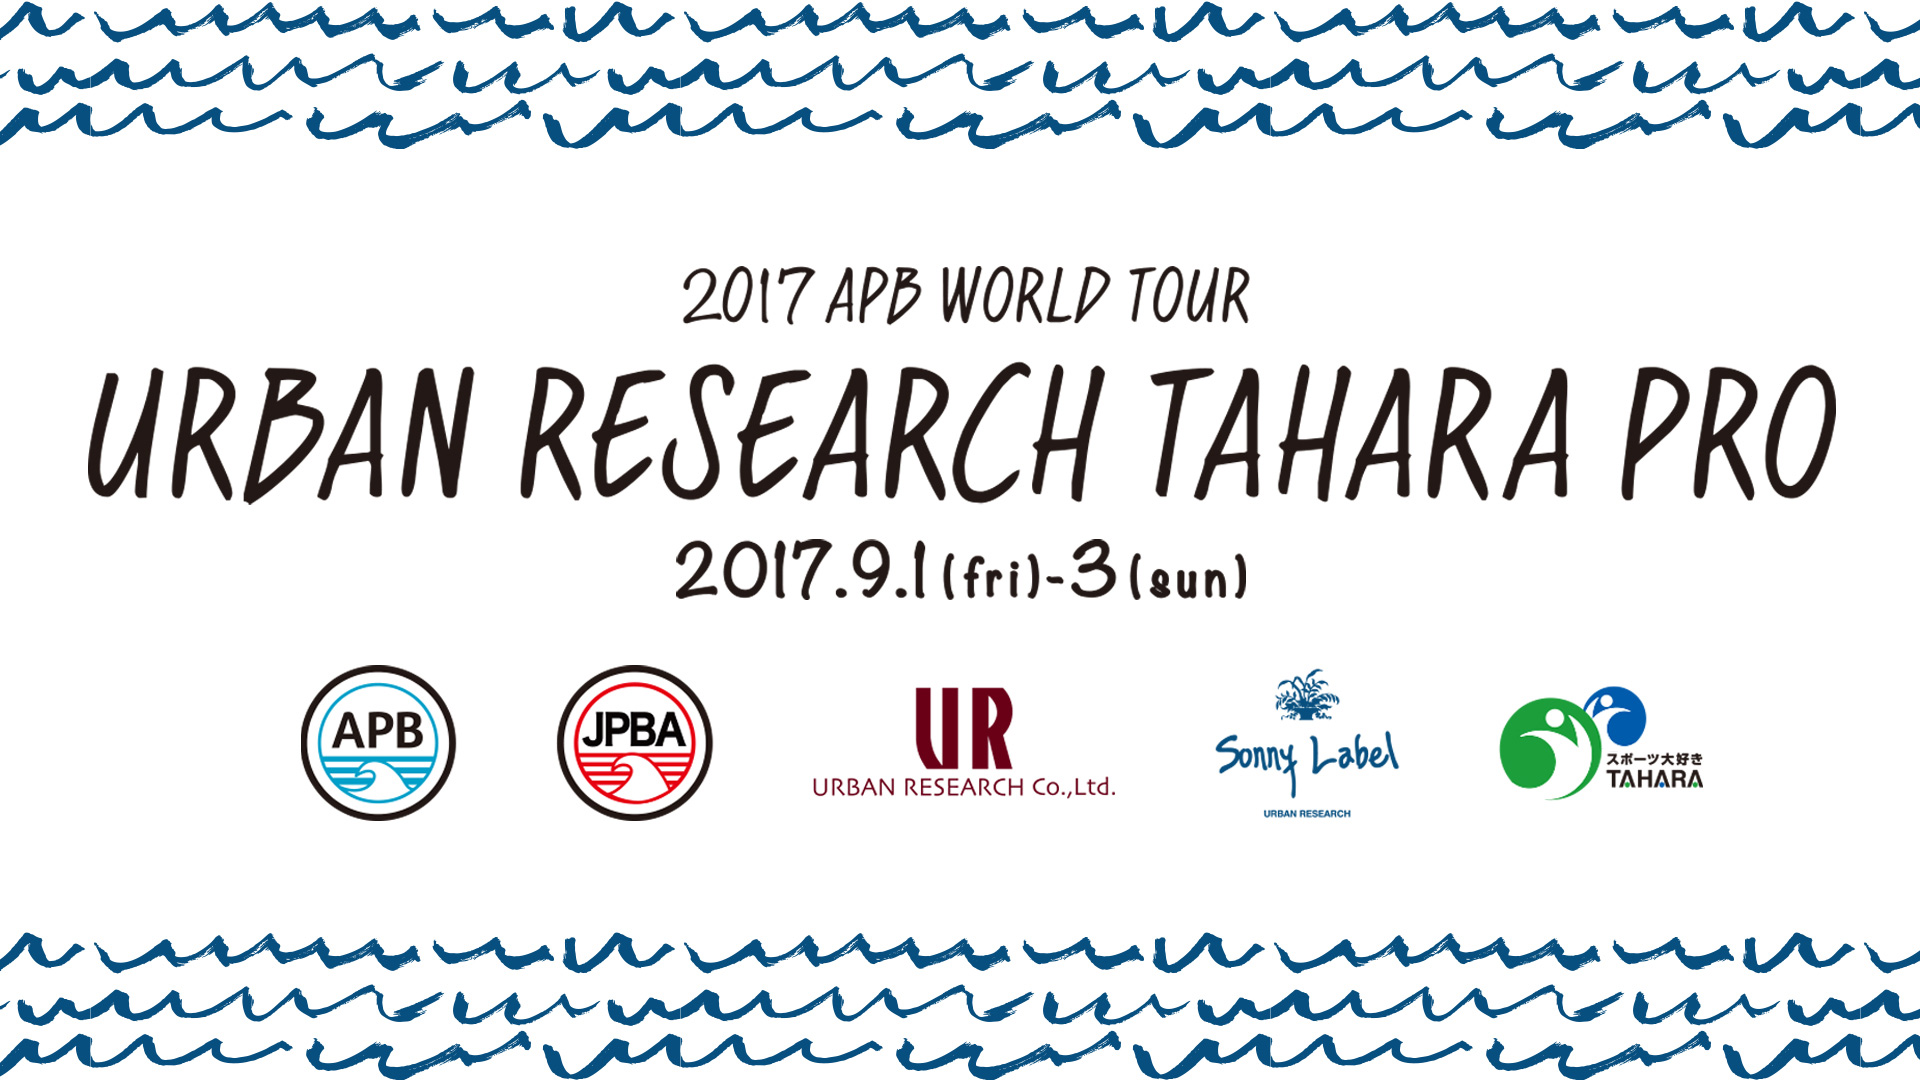 2017 APB WORLD TOUR TAHARA PRO